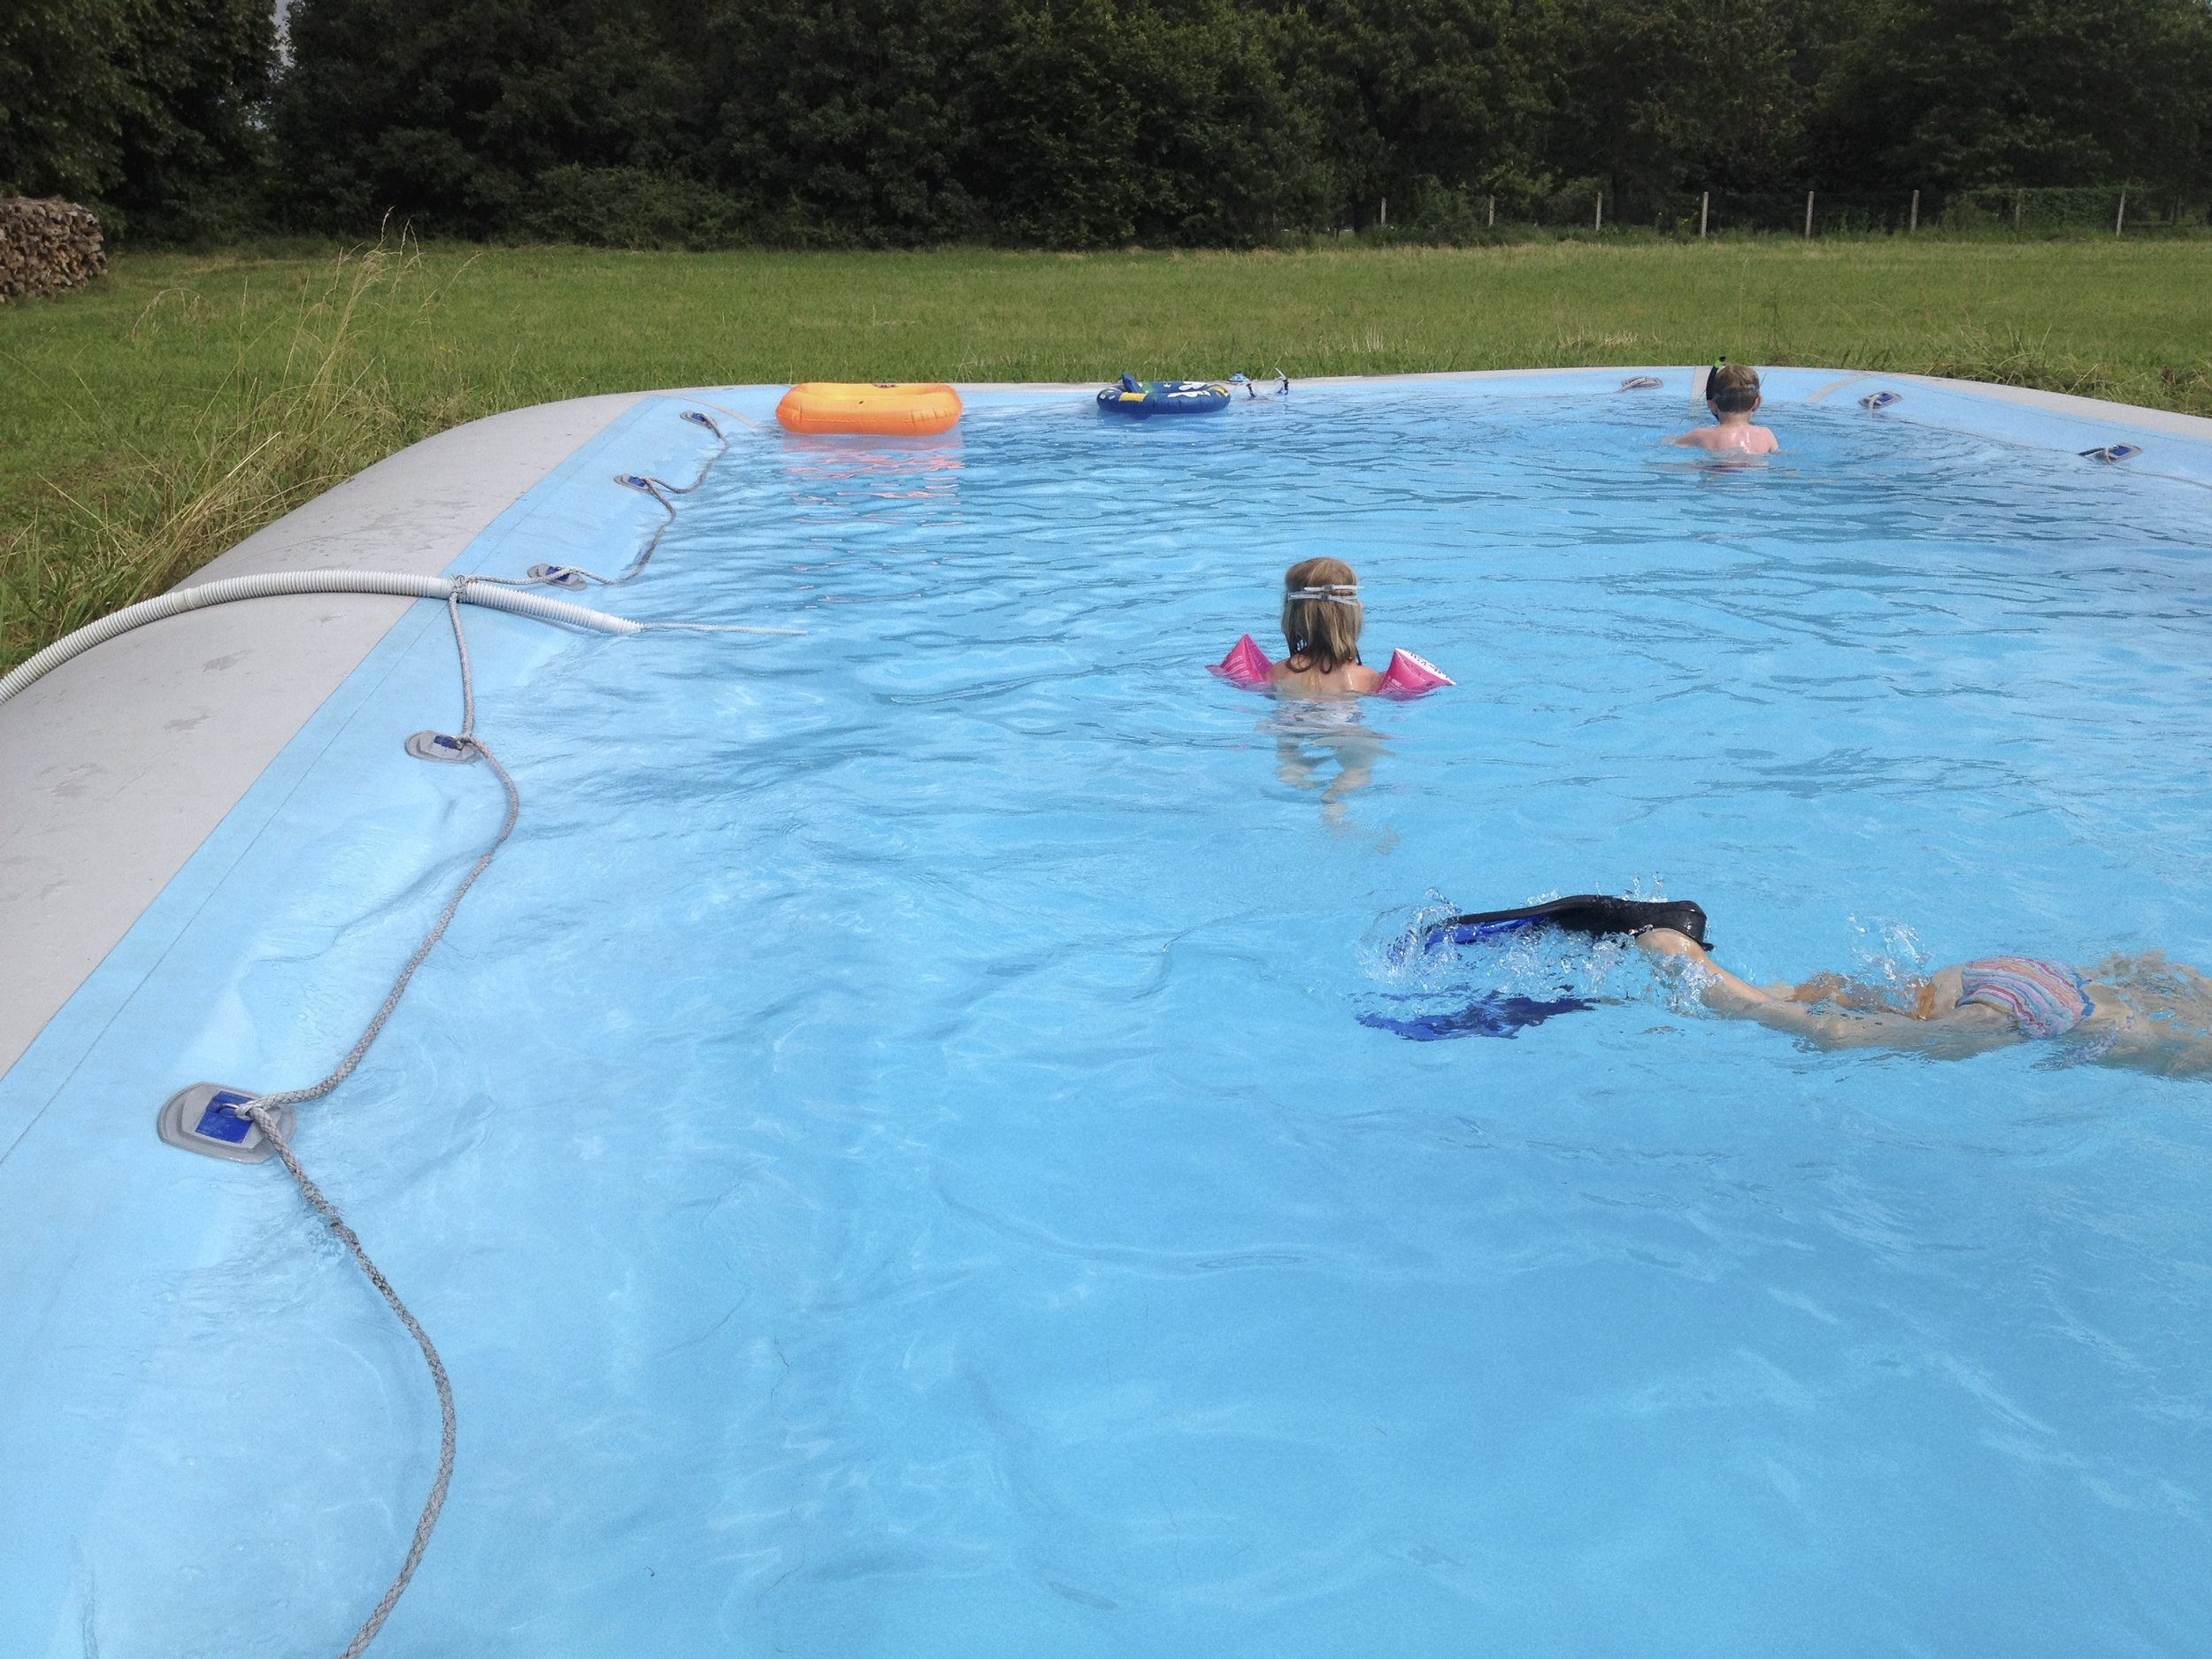 La Piscinethe Pool - het Zwembad - ° Adapté aux enfants, mais assez grand pour les grands° Child friendly, but big enough to have a nice swim as an adult° Kindvriendelijk, maar groot genoeg om ook als volwassene in te kunnen zwemmen